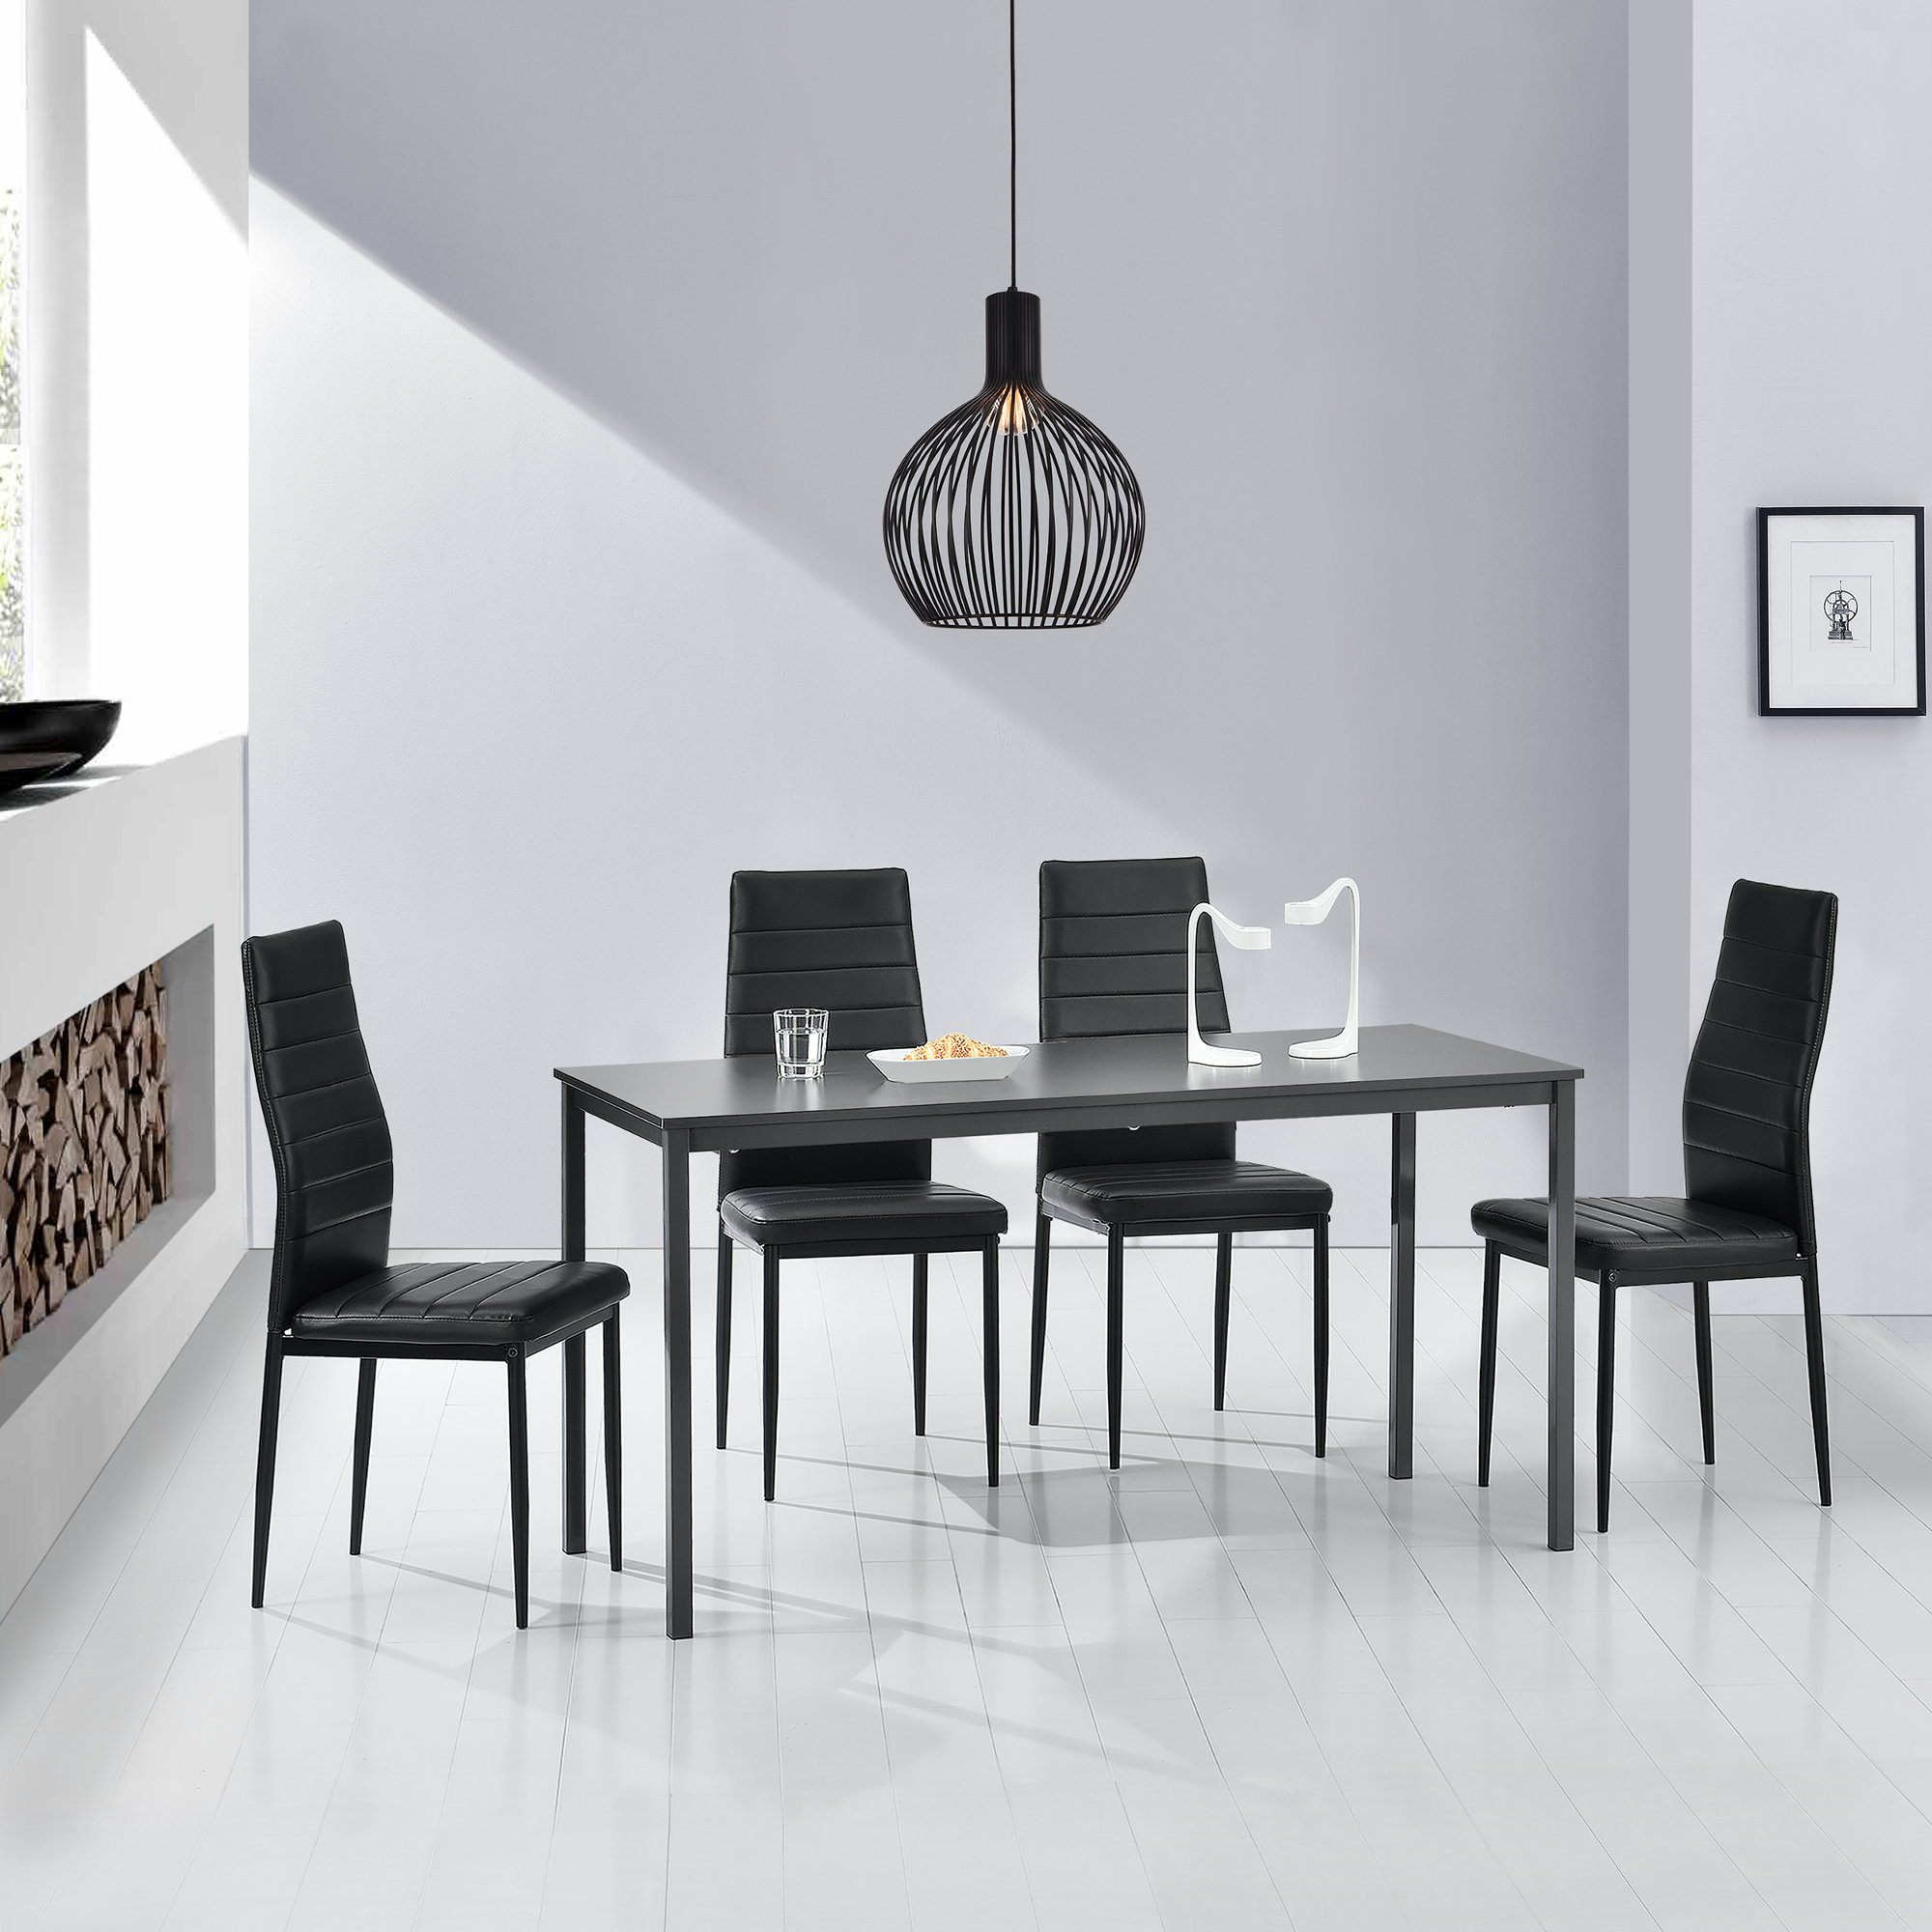 en.casa]® Table à manger + 4 chaise gris/noir 120x60cm table de ...